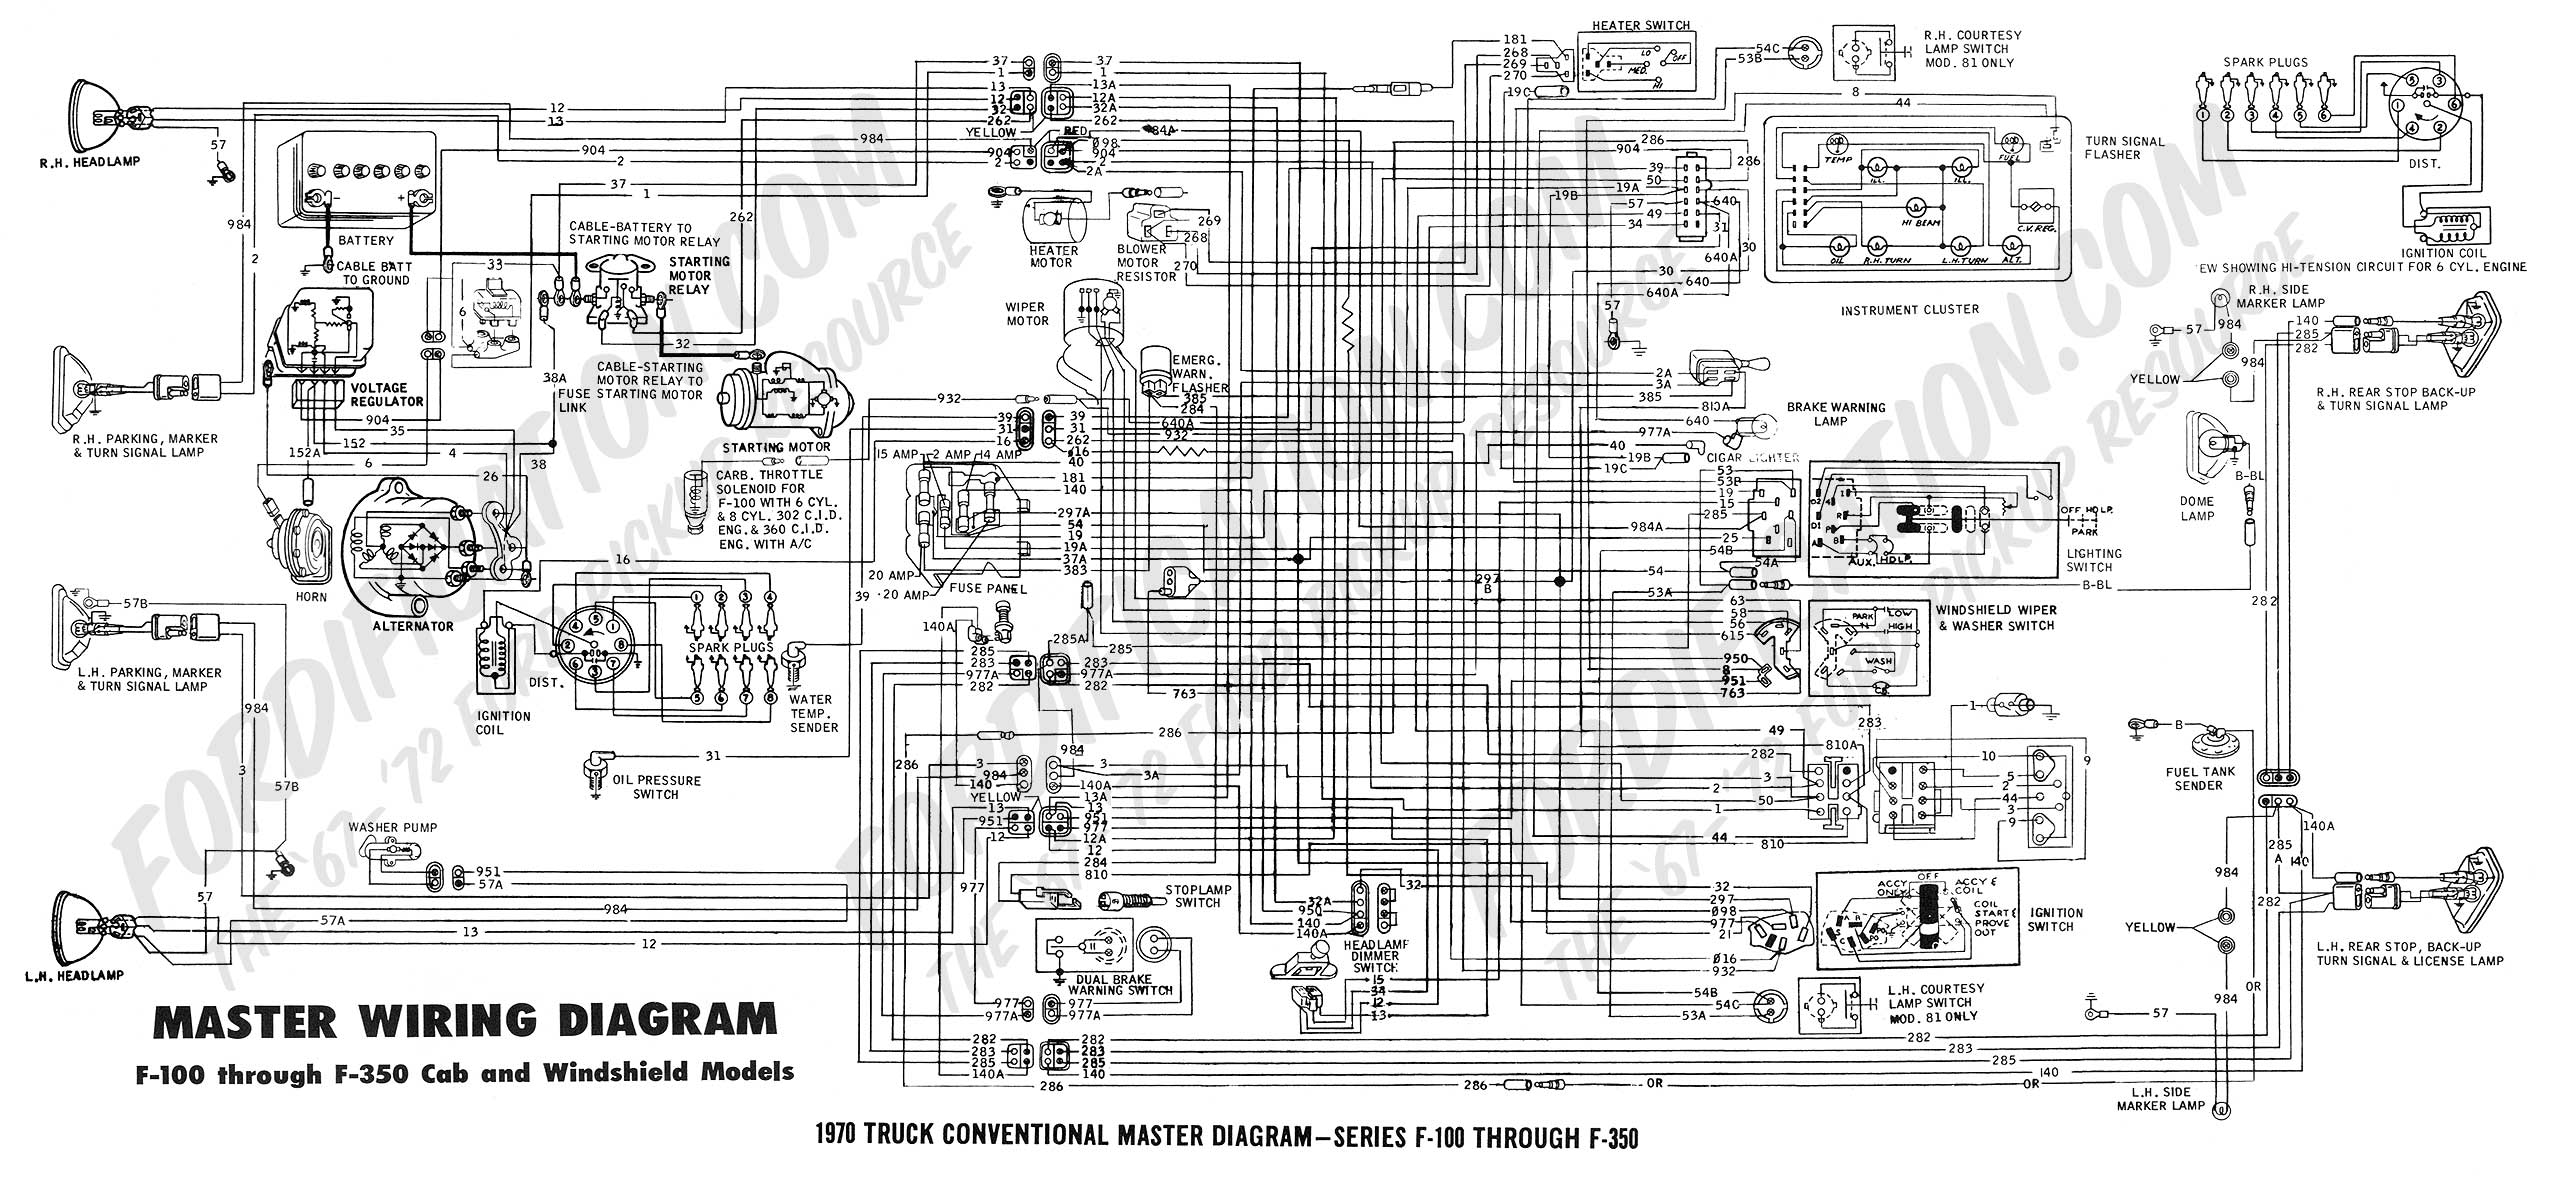 2ryja 1970 Ford Charging Voltage Regulator It Won T Start on pontiac fiero wiring diagram